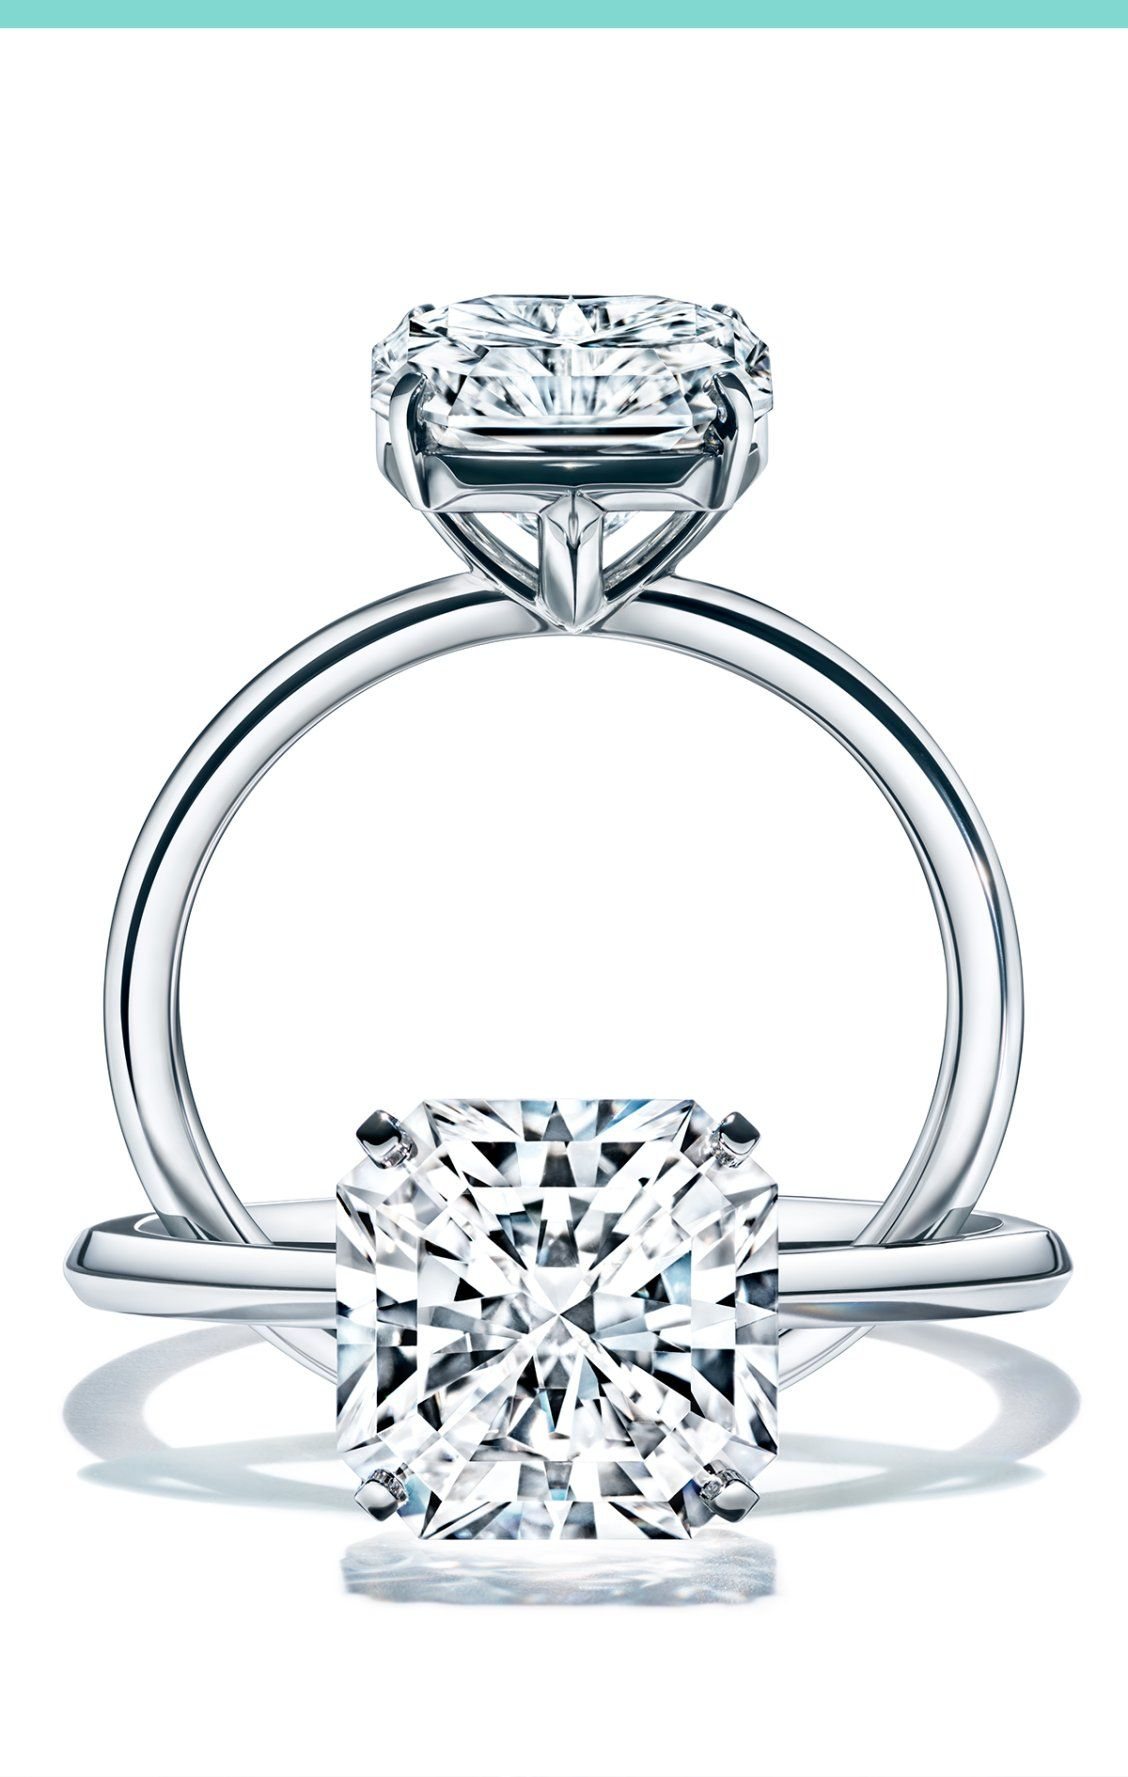 Jewelry & Watches 2.5 Ct Diamond Princess Square Ring Split Shank 18 Karat Yellow Gold Solitaire Available In Various Designs And Specifications For Your Selection